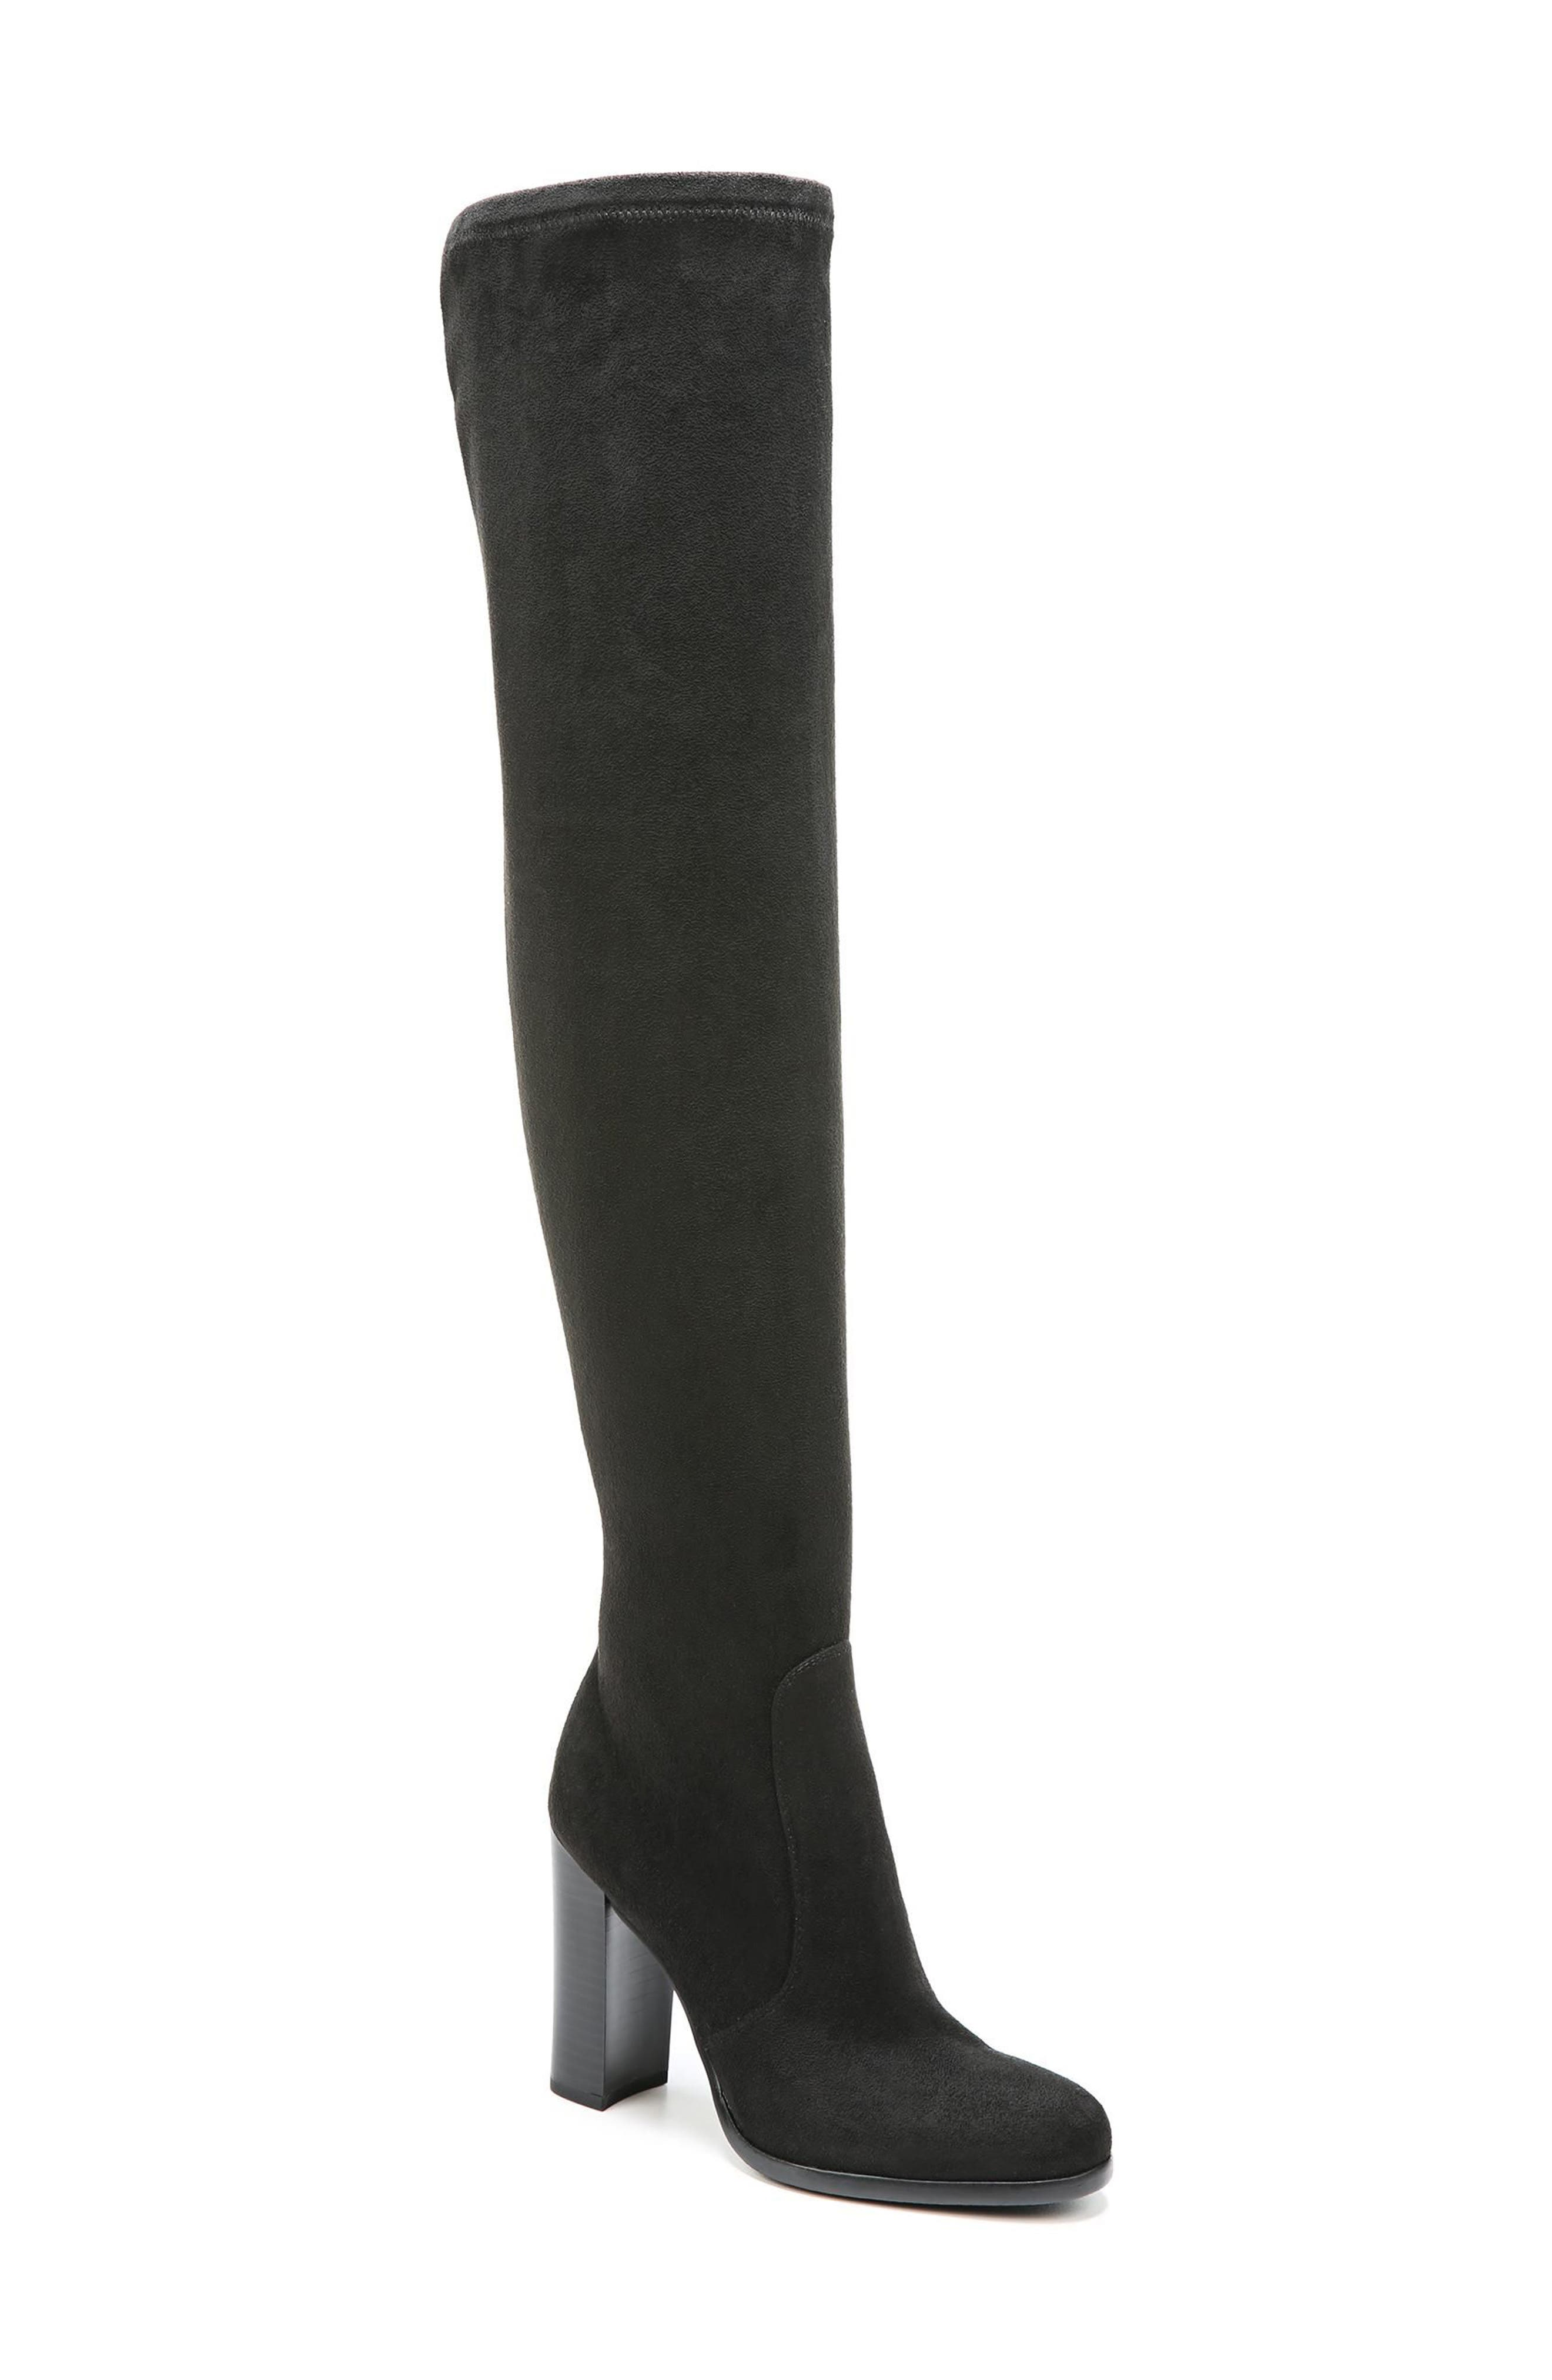 Vena 2 Over the Knee Boot,                             Main thumbnail 1, color,                             Black